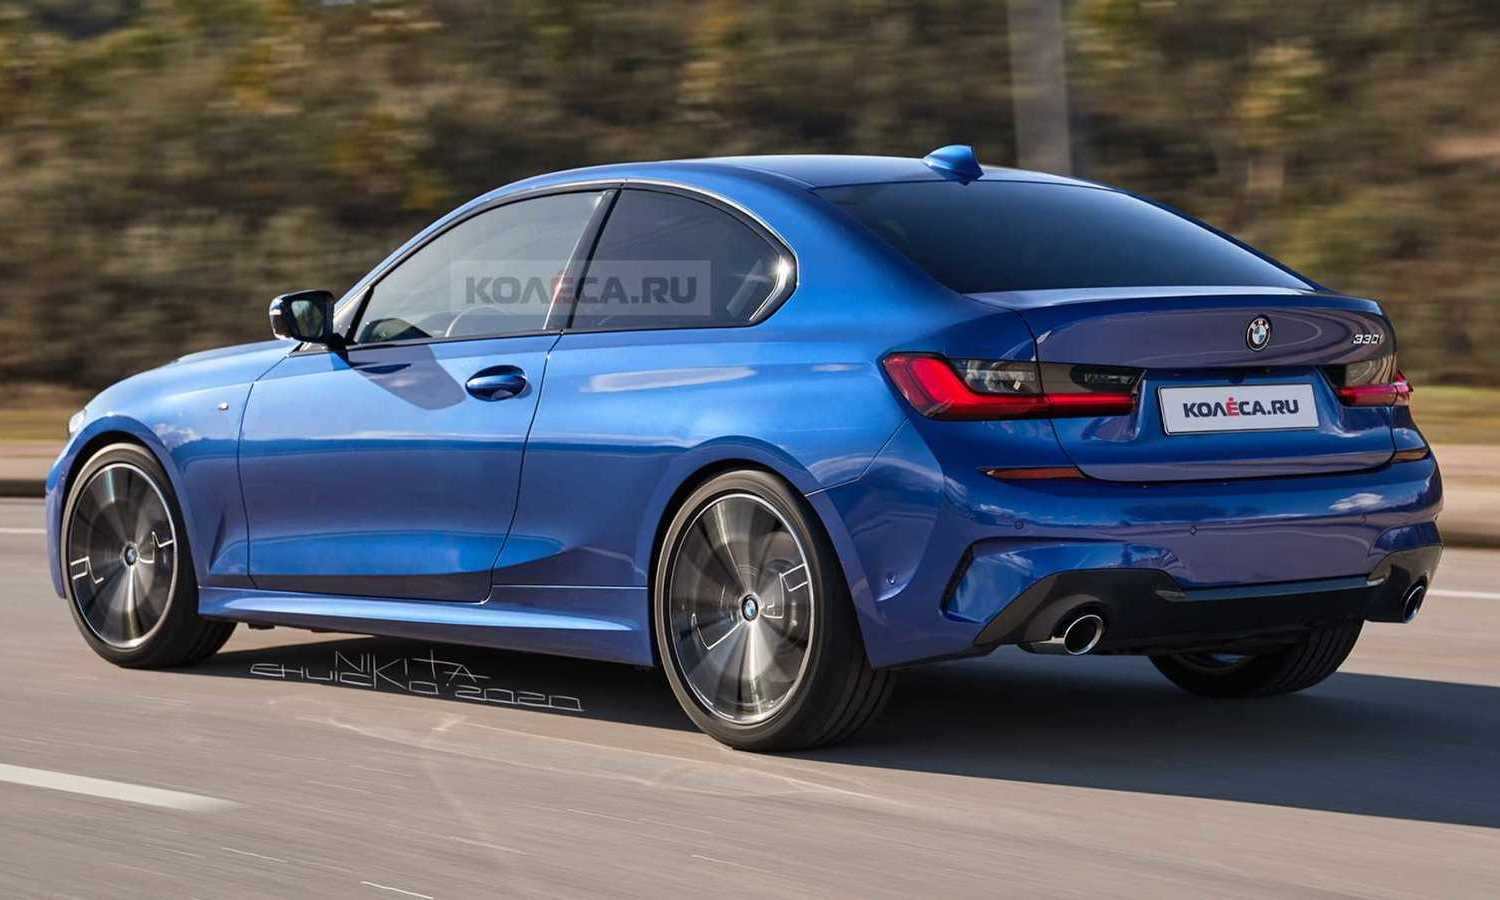 BMW Serie 3 Compact rear rendering